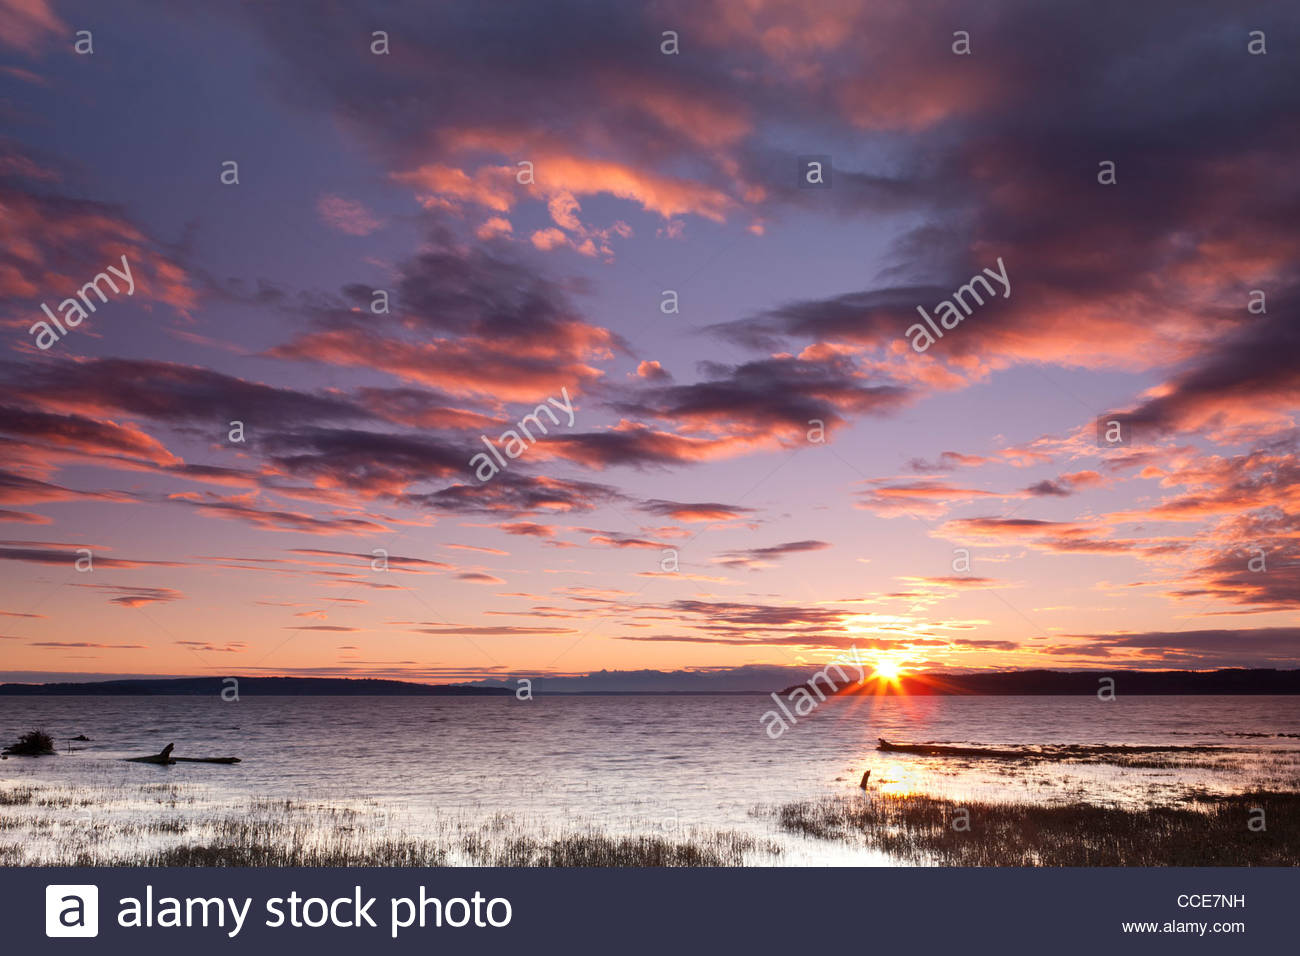 The sun sets behind the Olympic Mountains, coloring the sky above Skagit Bay in this view from Fir Island, Washington. - Stock Image